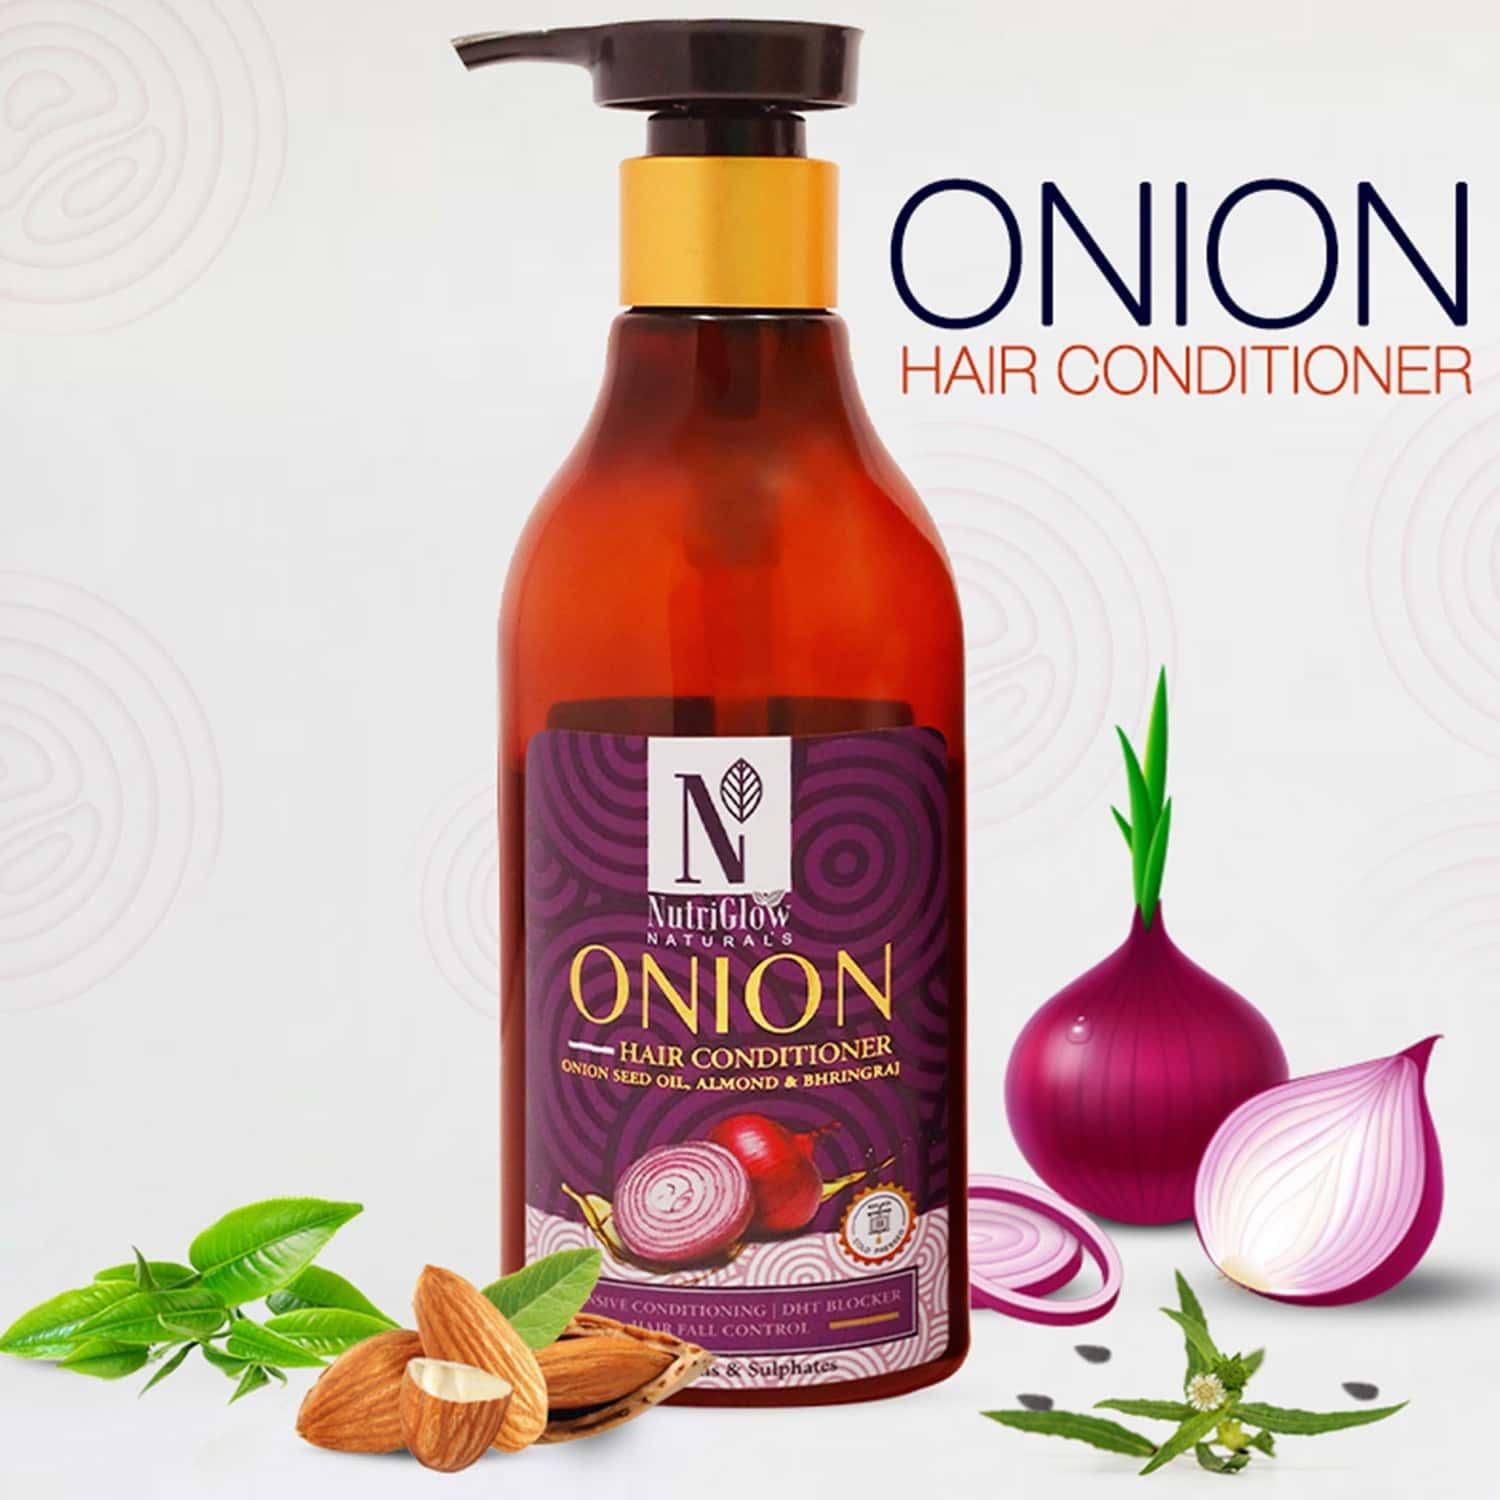 Nutriglow Natural's Onion Hair Conditioner/with Natural Source Ingredients/for Damaged Hair (300 Ml)